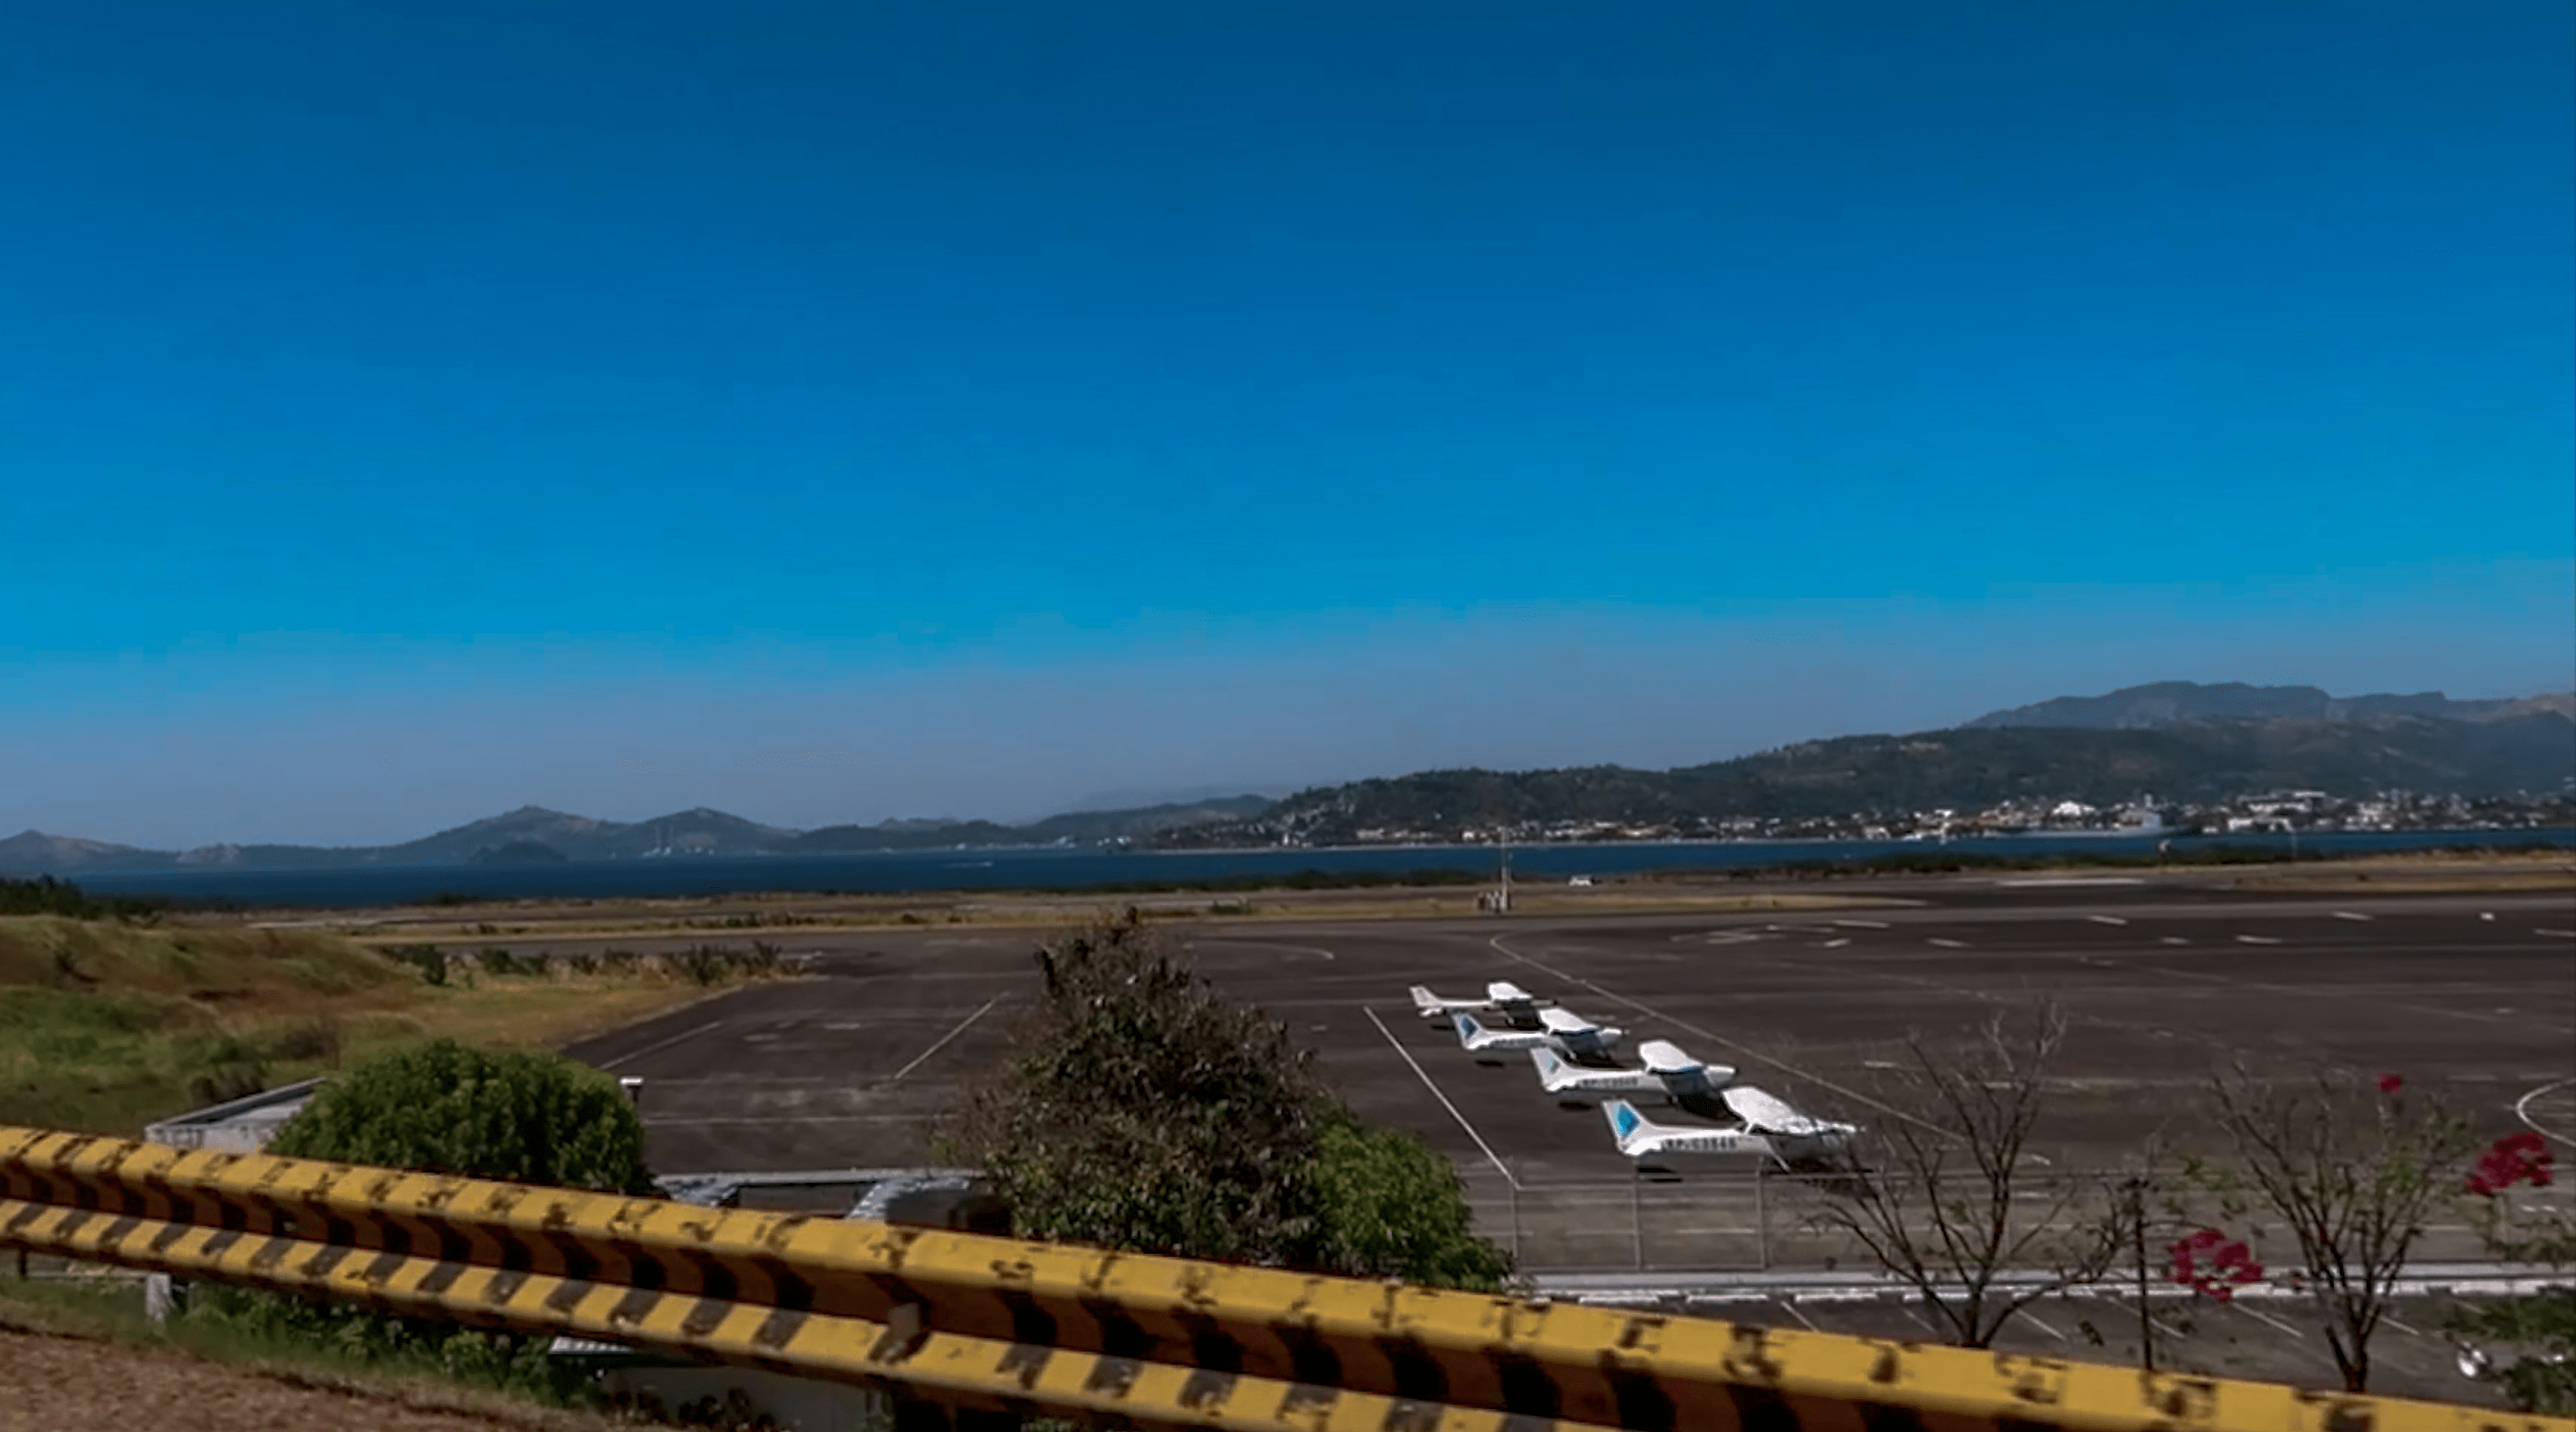 sport planes lined up on air strip in subic bay freeport in zambales philippines